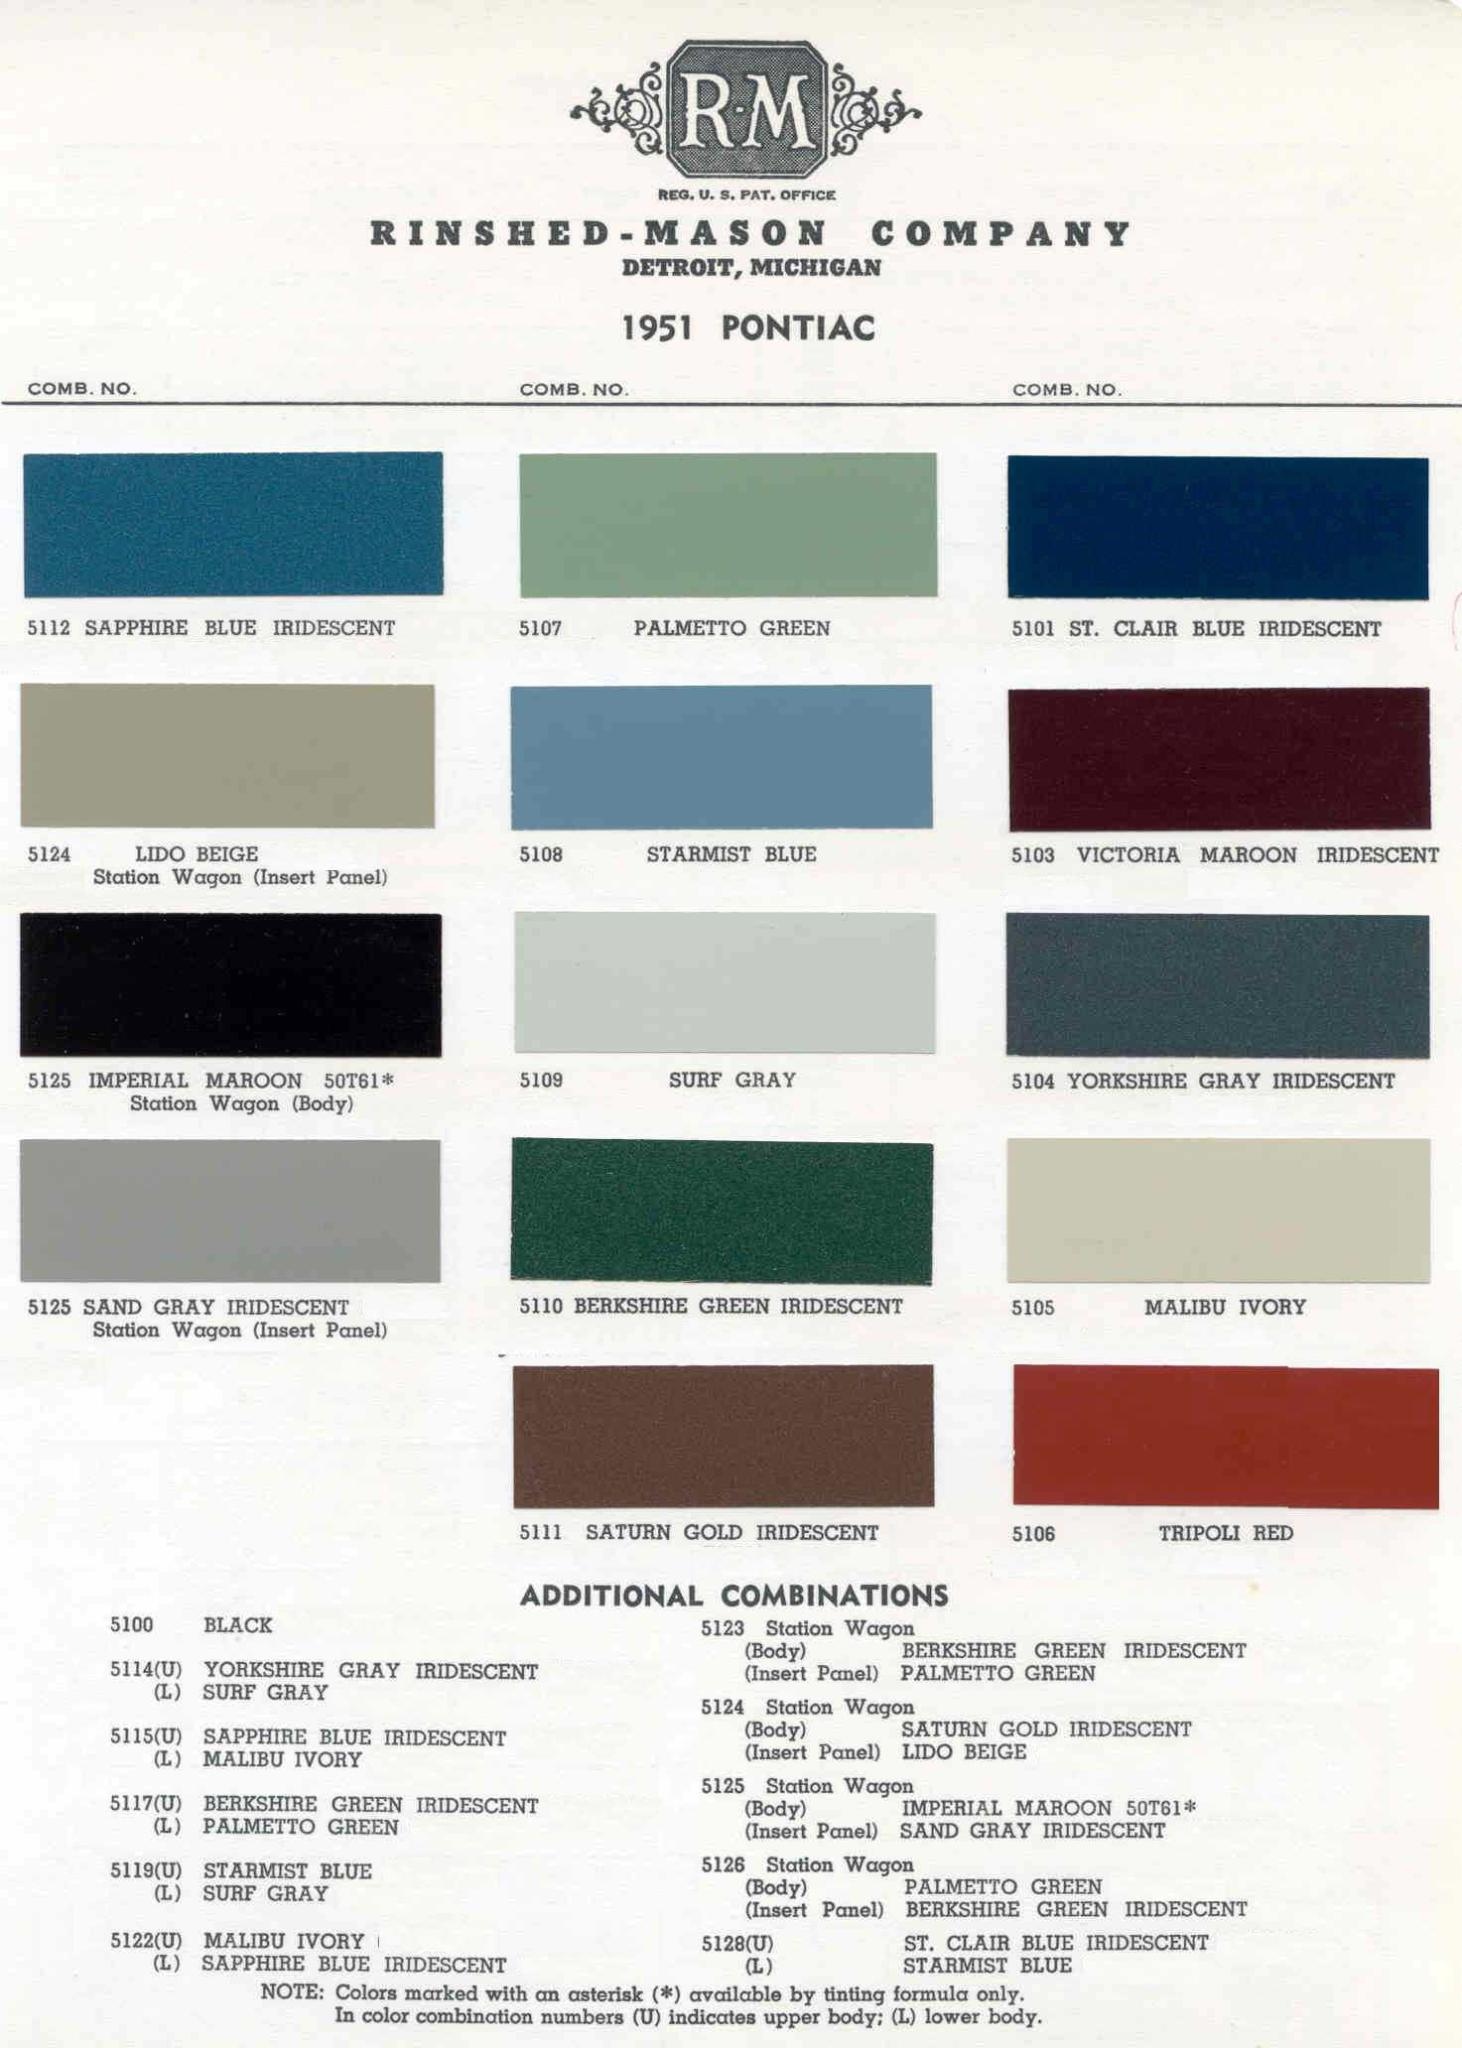 Color Code and Paint Color Chart for Pontiac for 1951